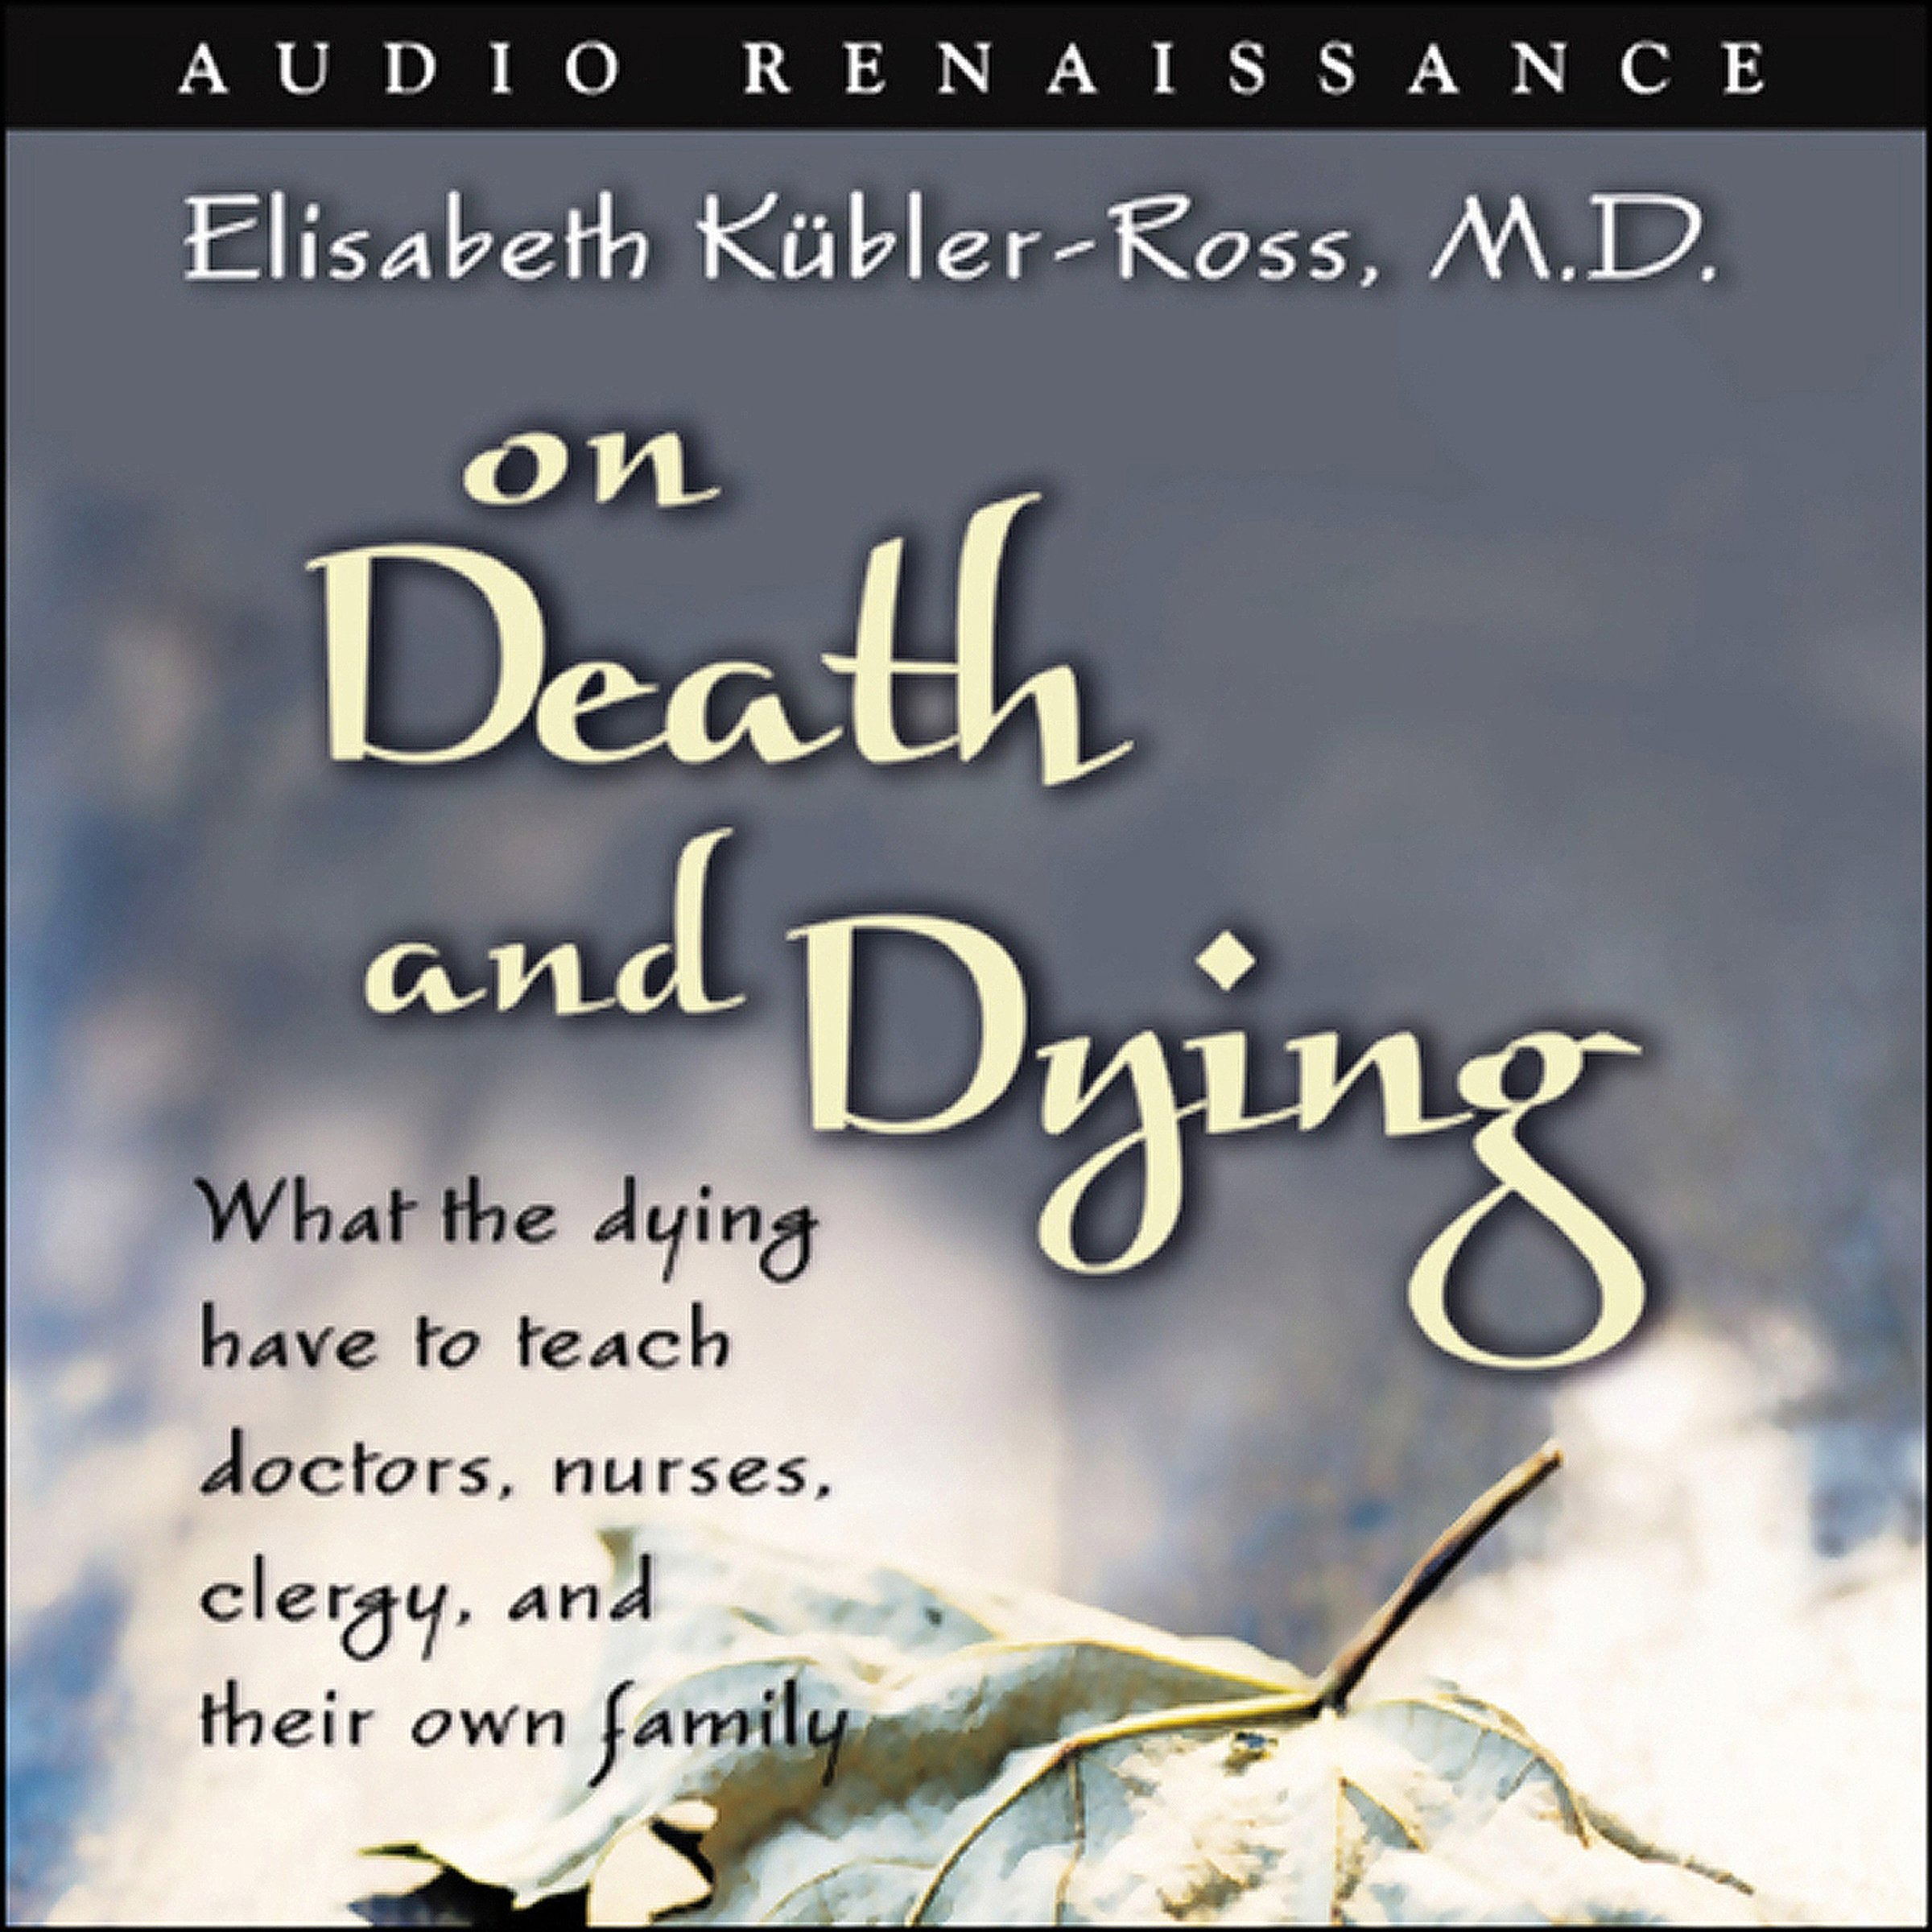 On Death and Dying: What the Dying Have to Teach Doctors, Nurses, Clergy, and Their Own Family